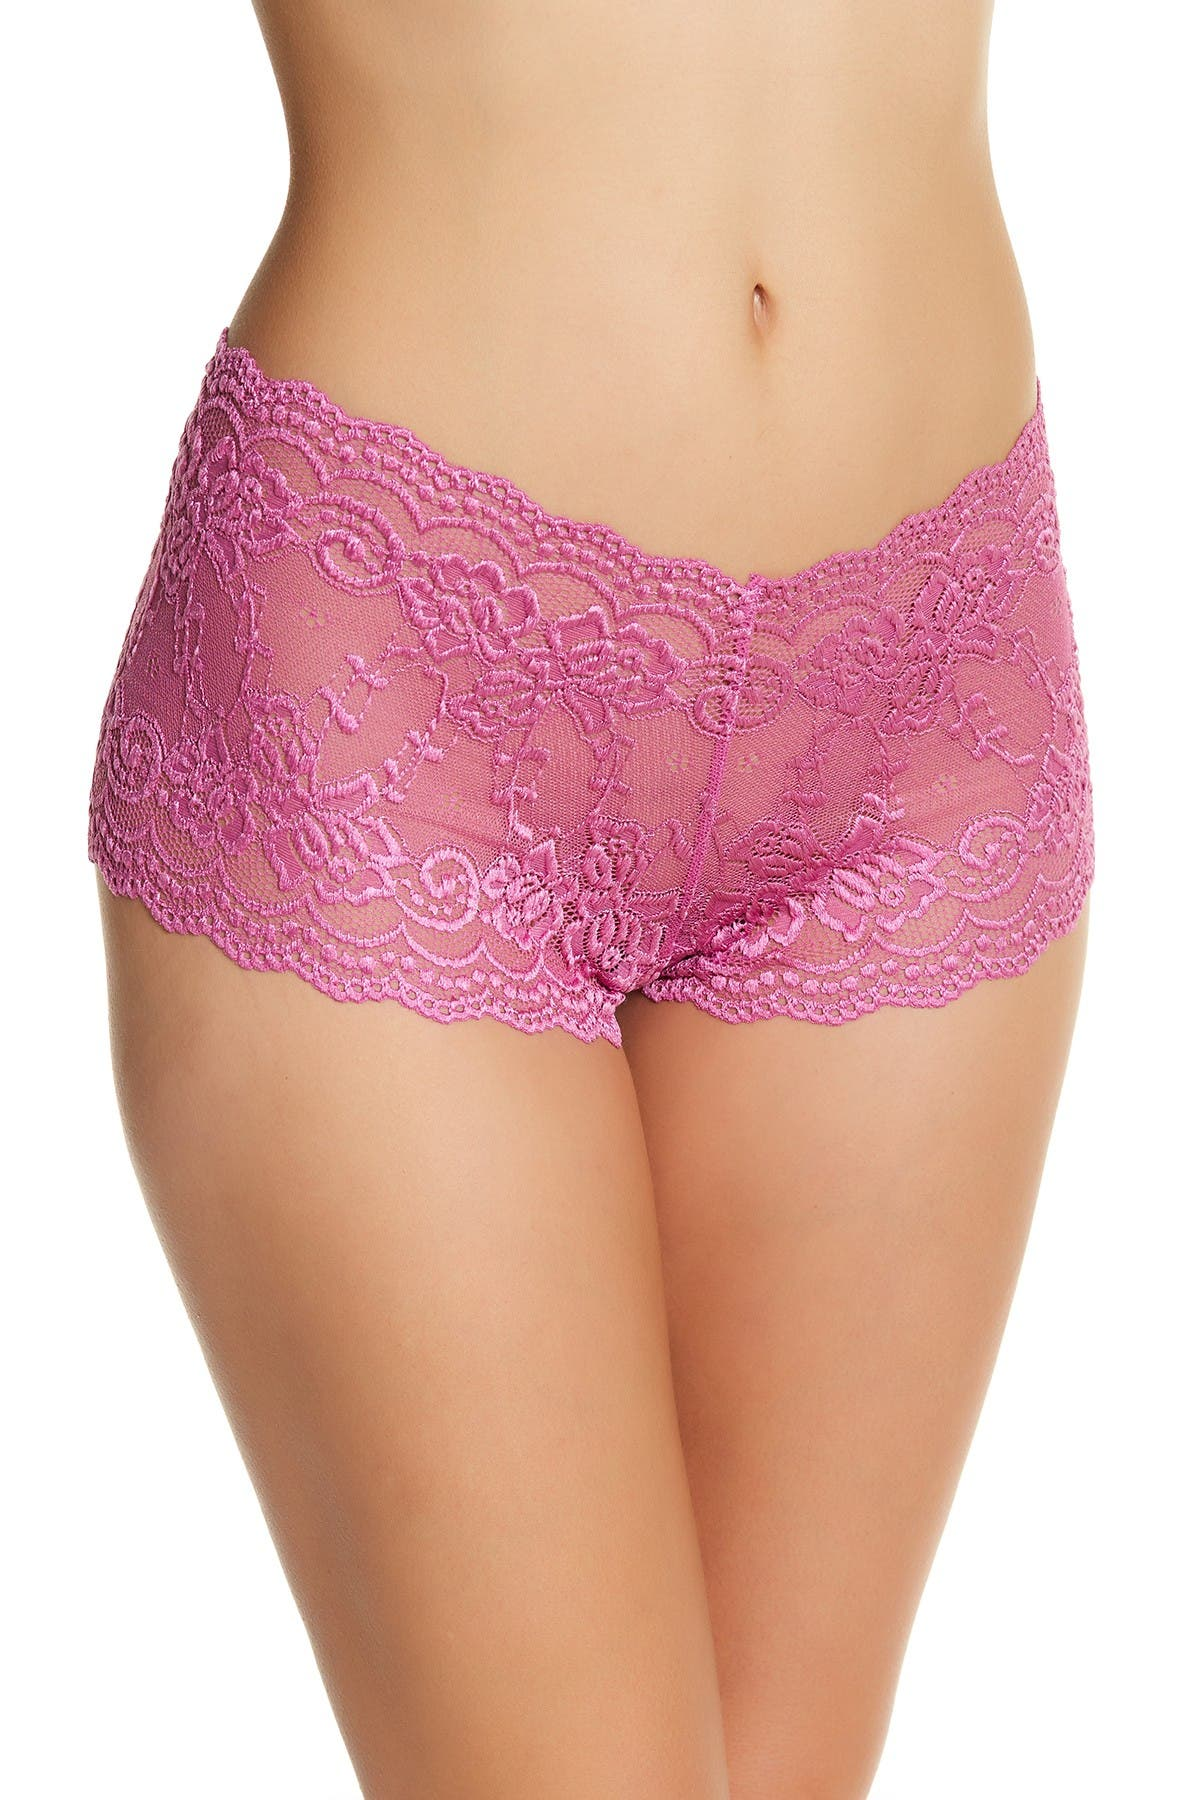 Image of Felina Angela Floral Lace Boyshort